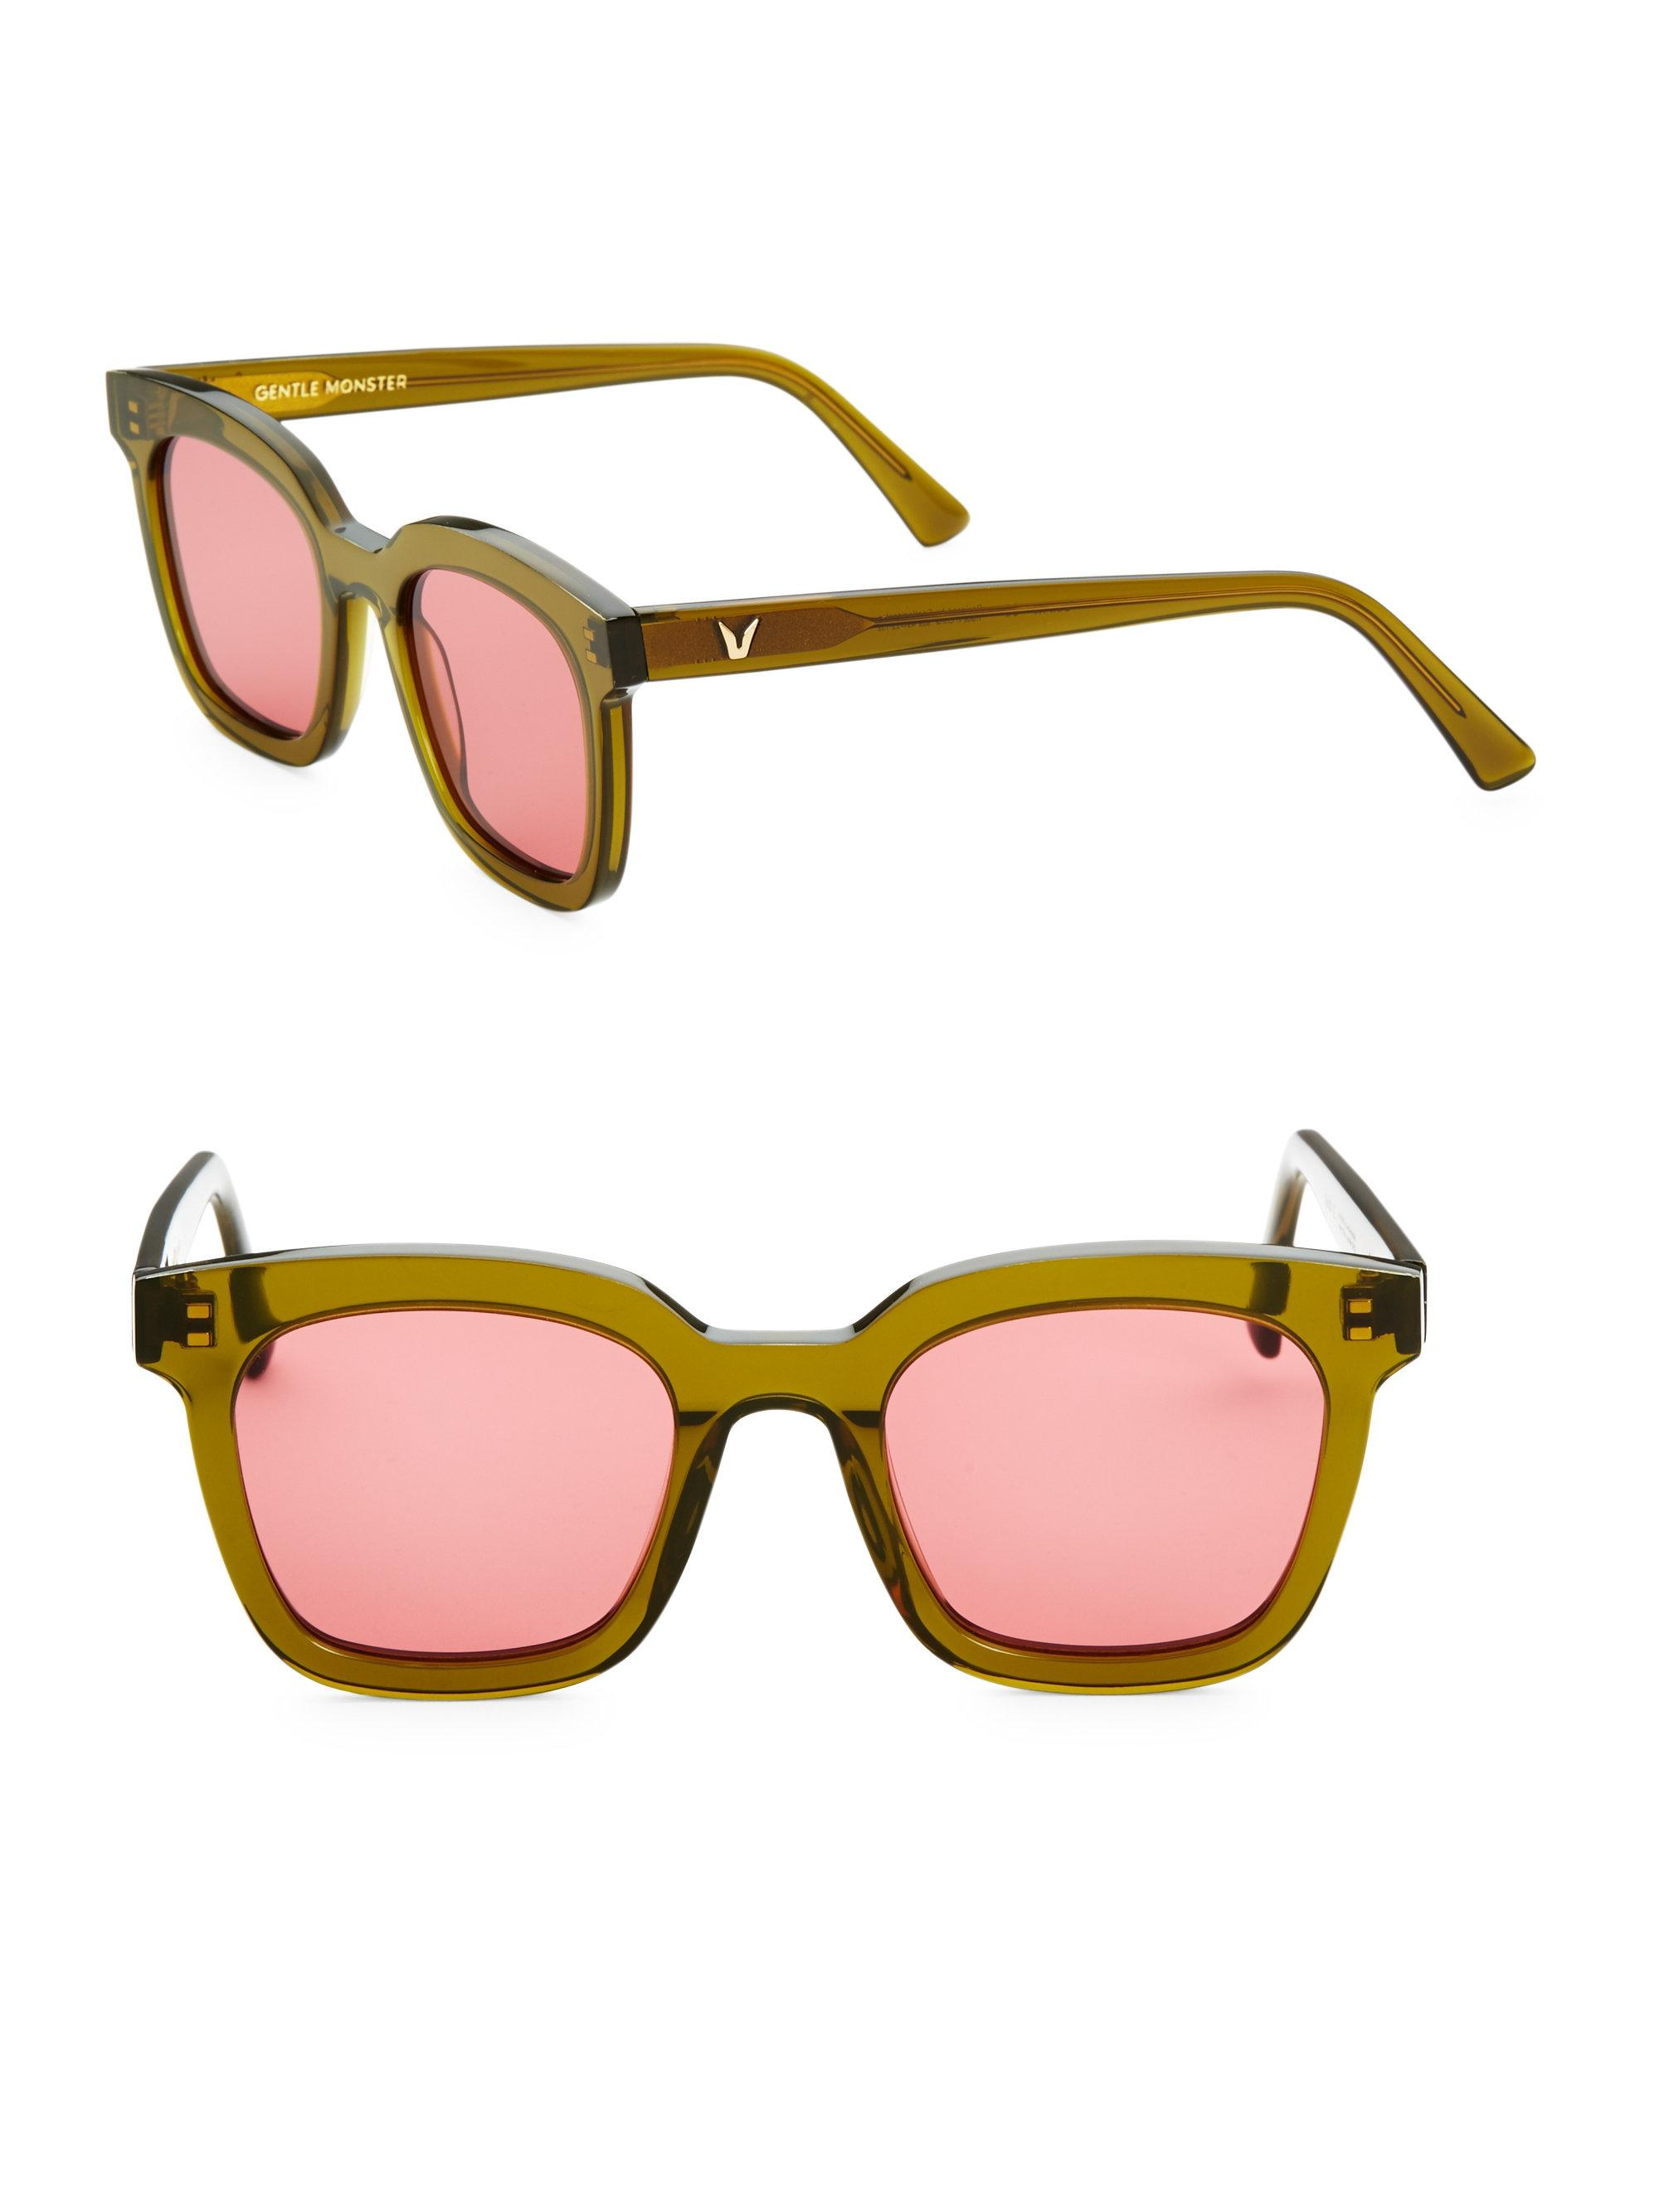 540a61754dbf Lyst - Gentle Monster 48mm Finn Retro Square Sunglasses in Pink